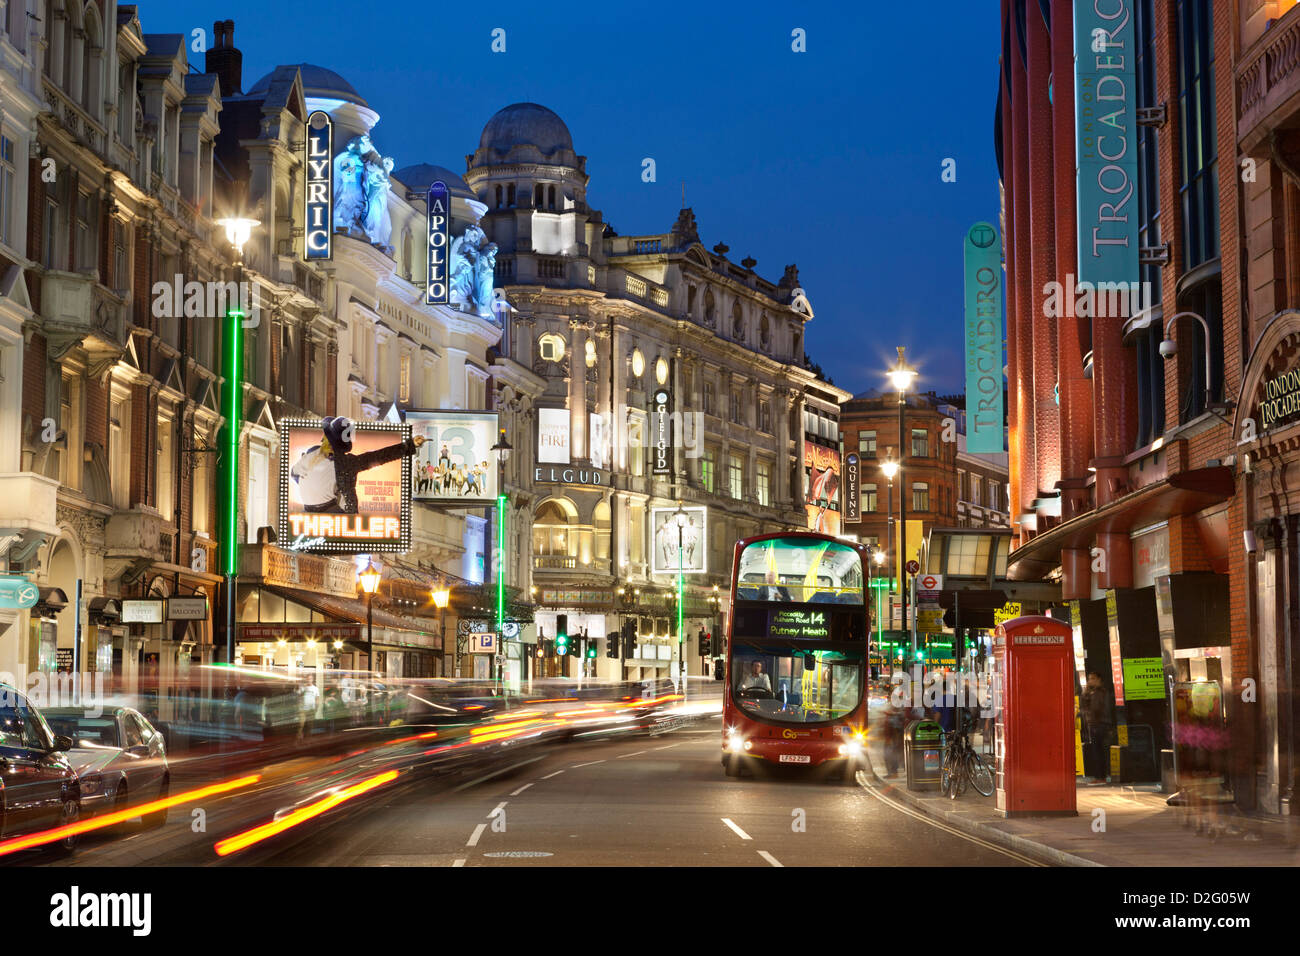 Shaftesbury Avenue theatres - Stock Image